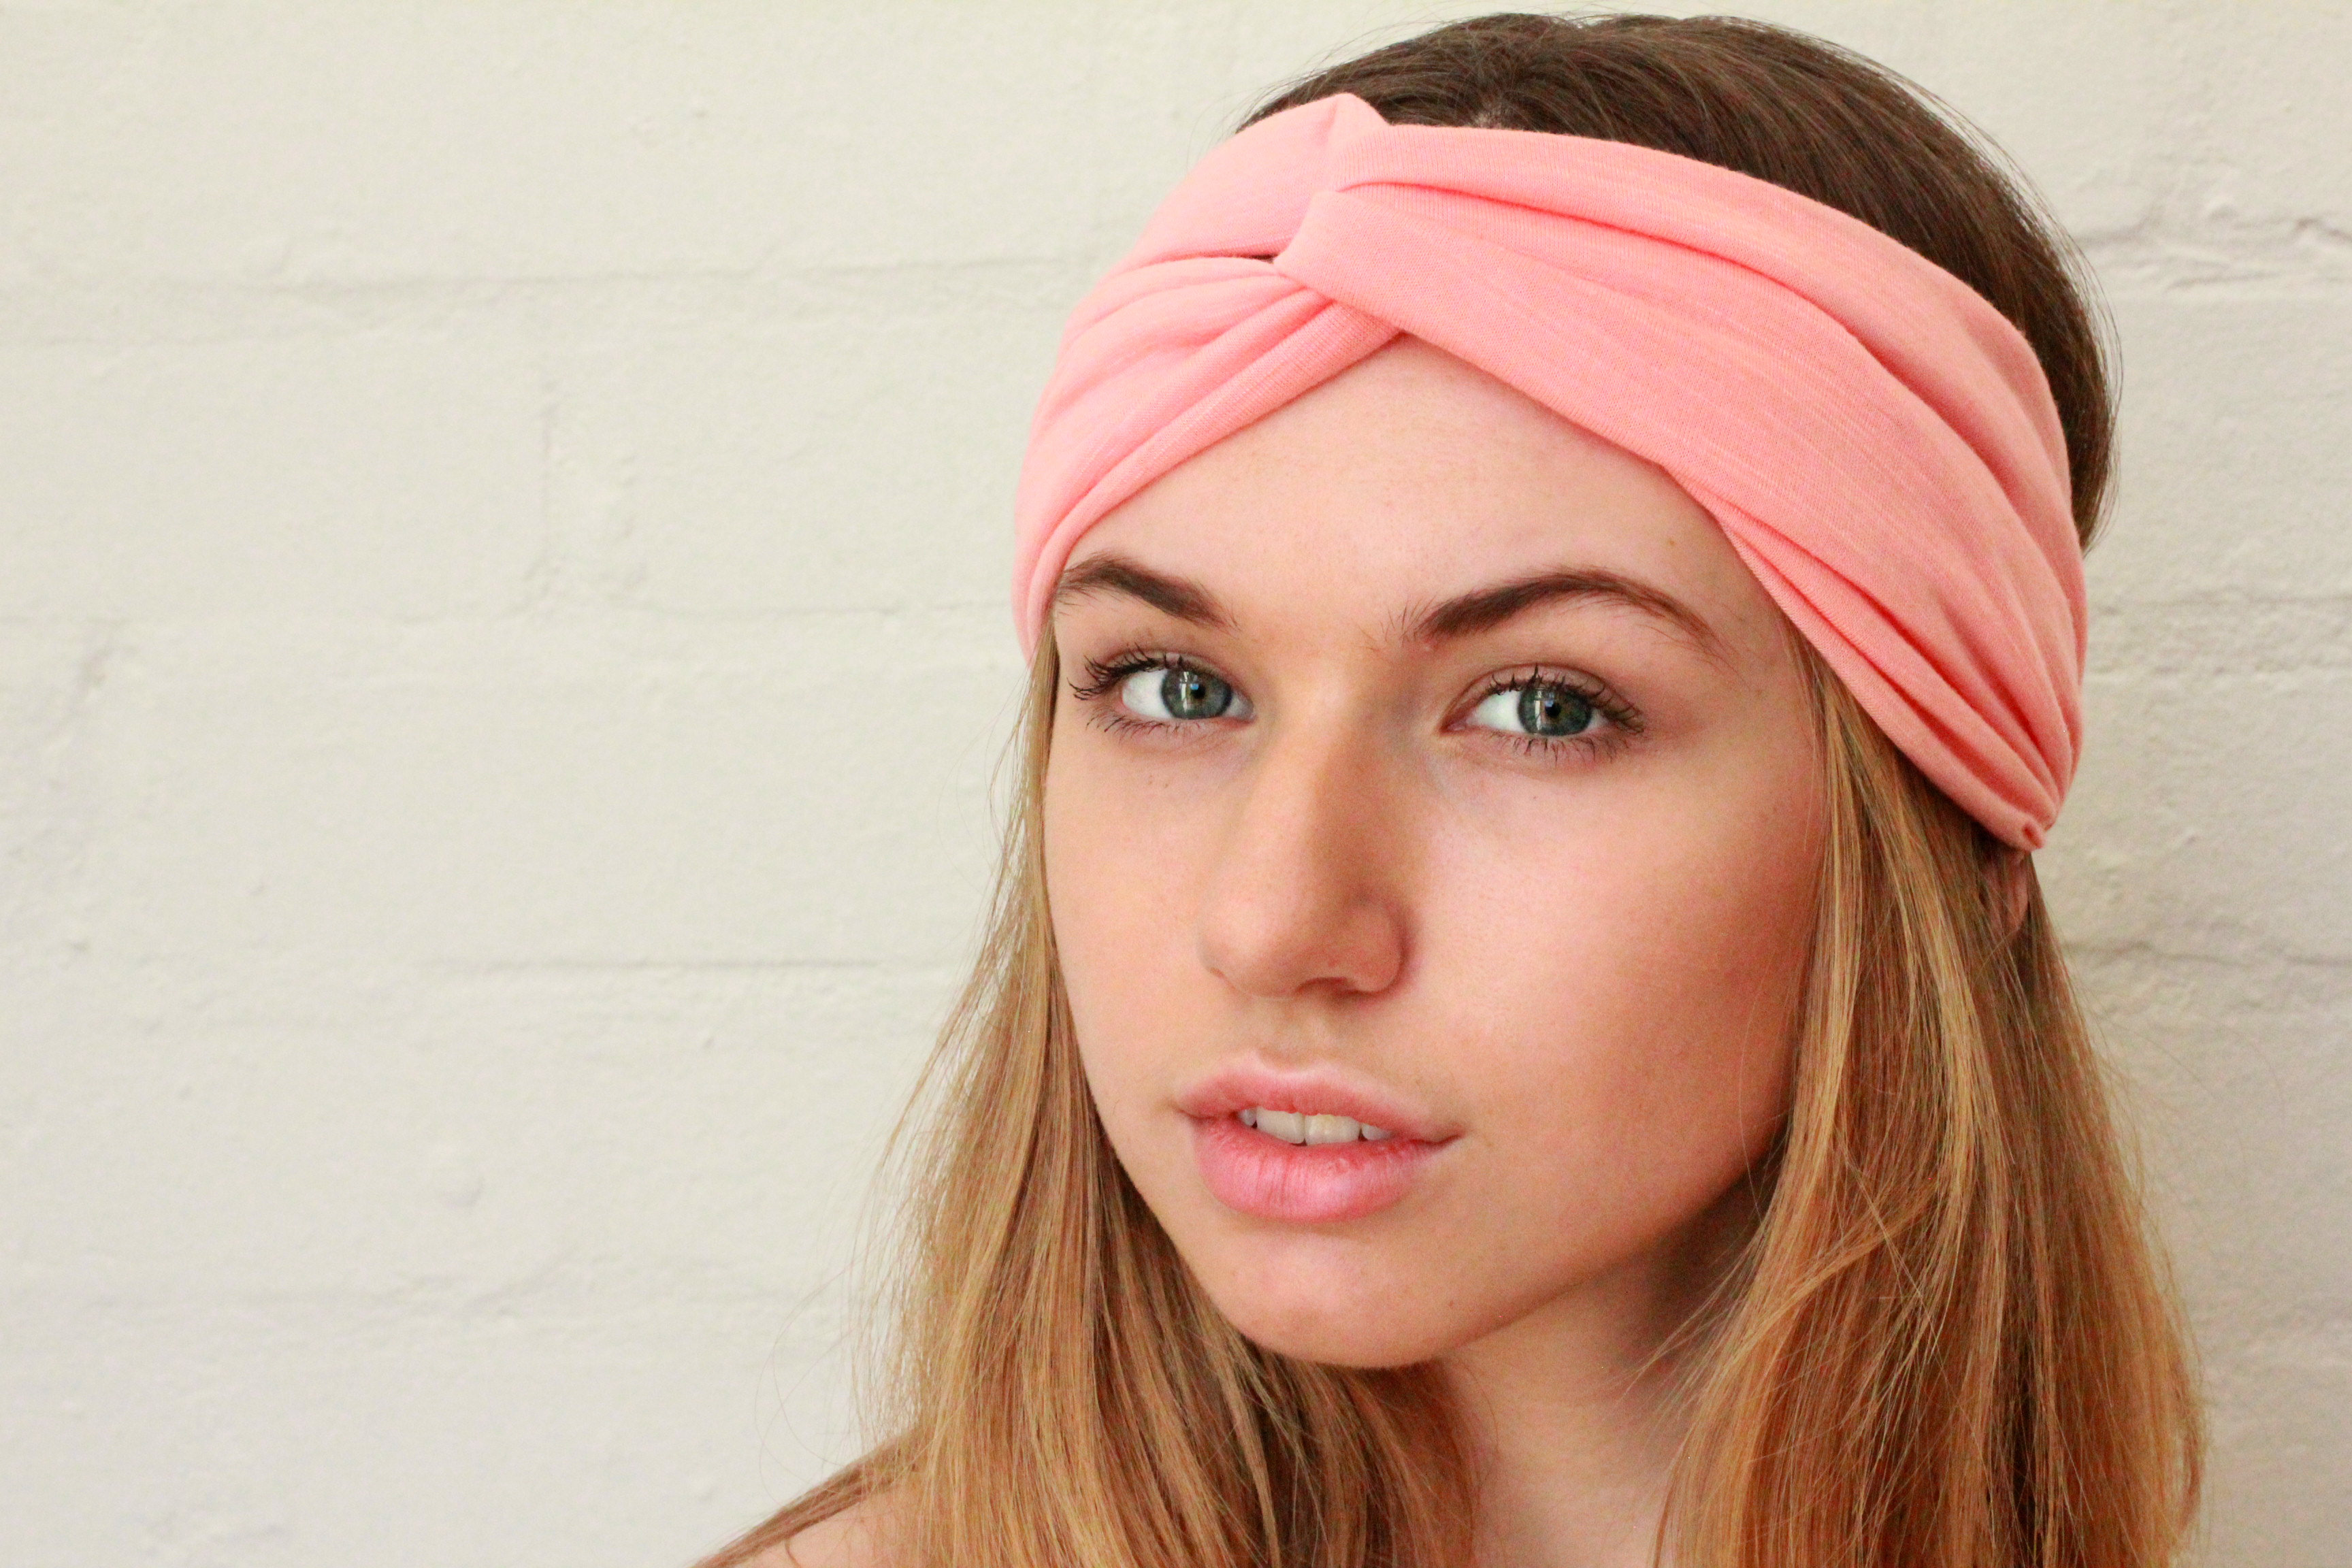 Workout Headband -Turban Headband 769b32f4585